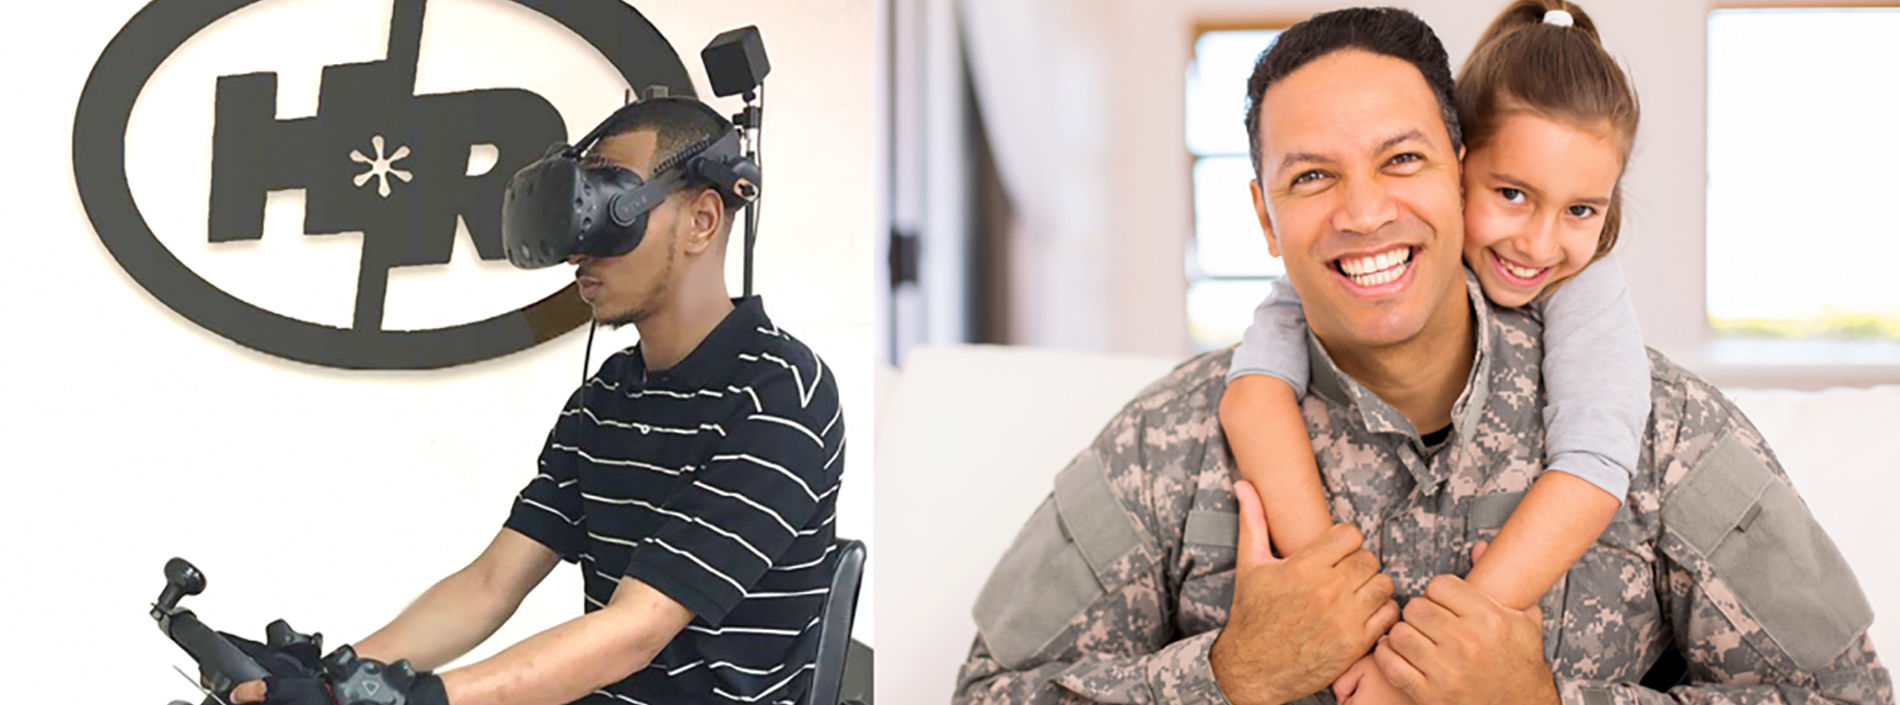 One the left half of the image, a man training with virtual reality; on the right half of the image, a military man holding his daughter